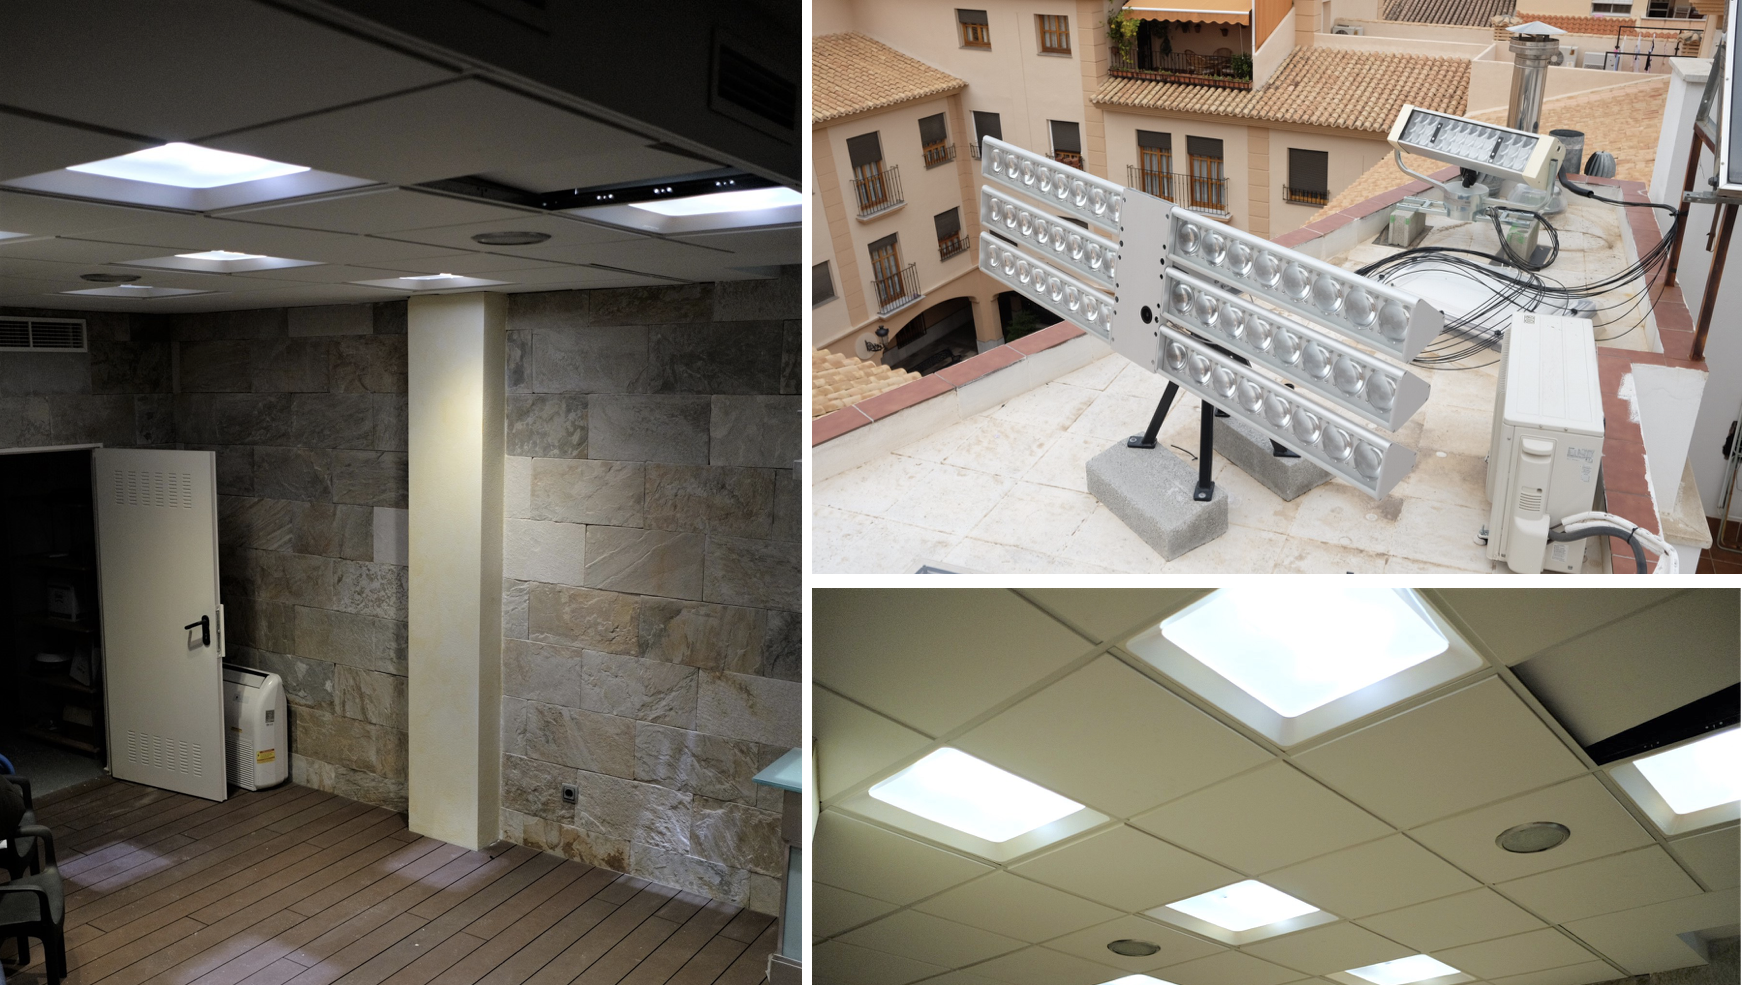 Extended Installation Of Parans System In Spain